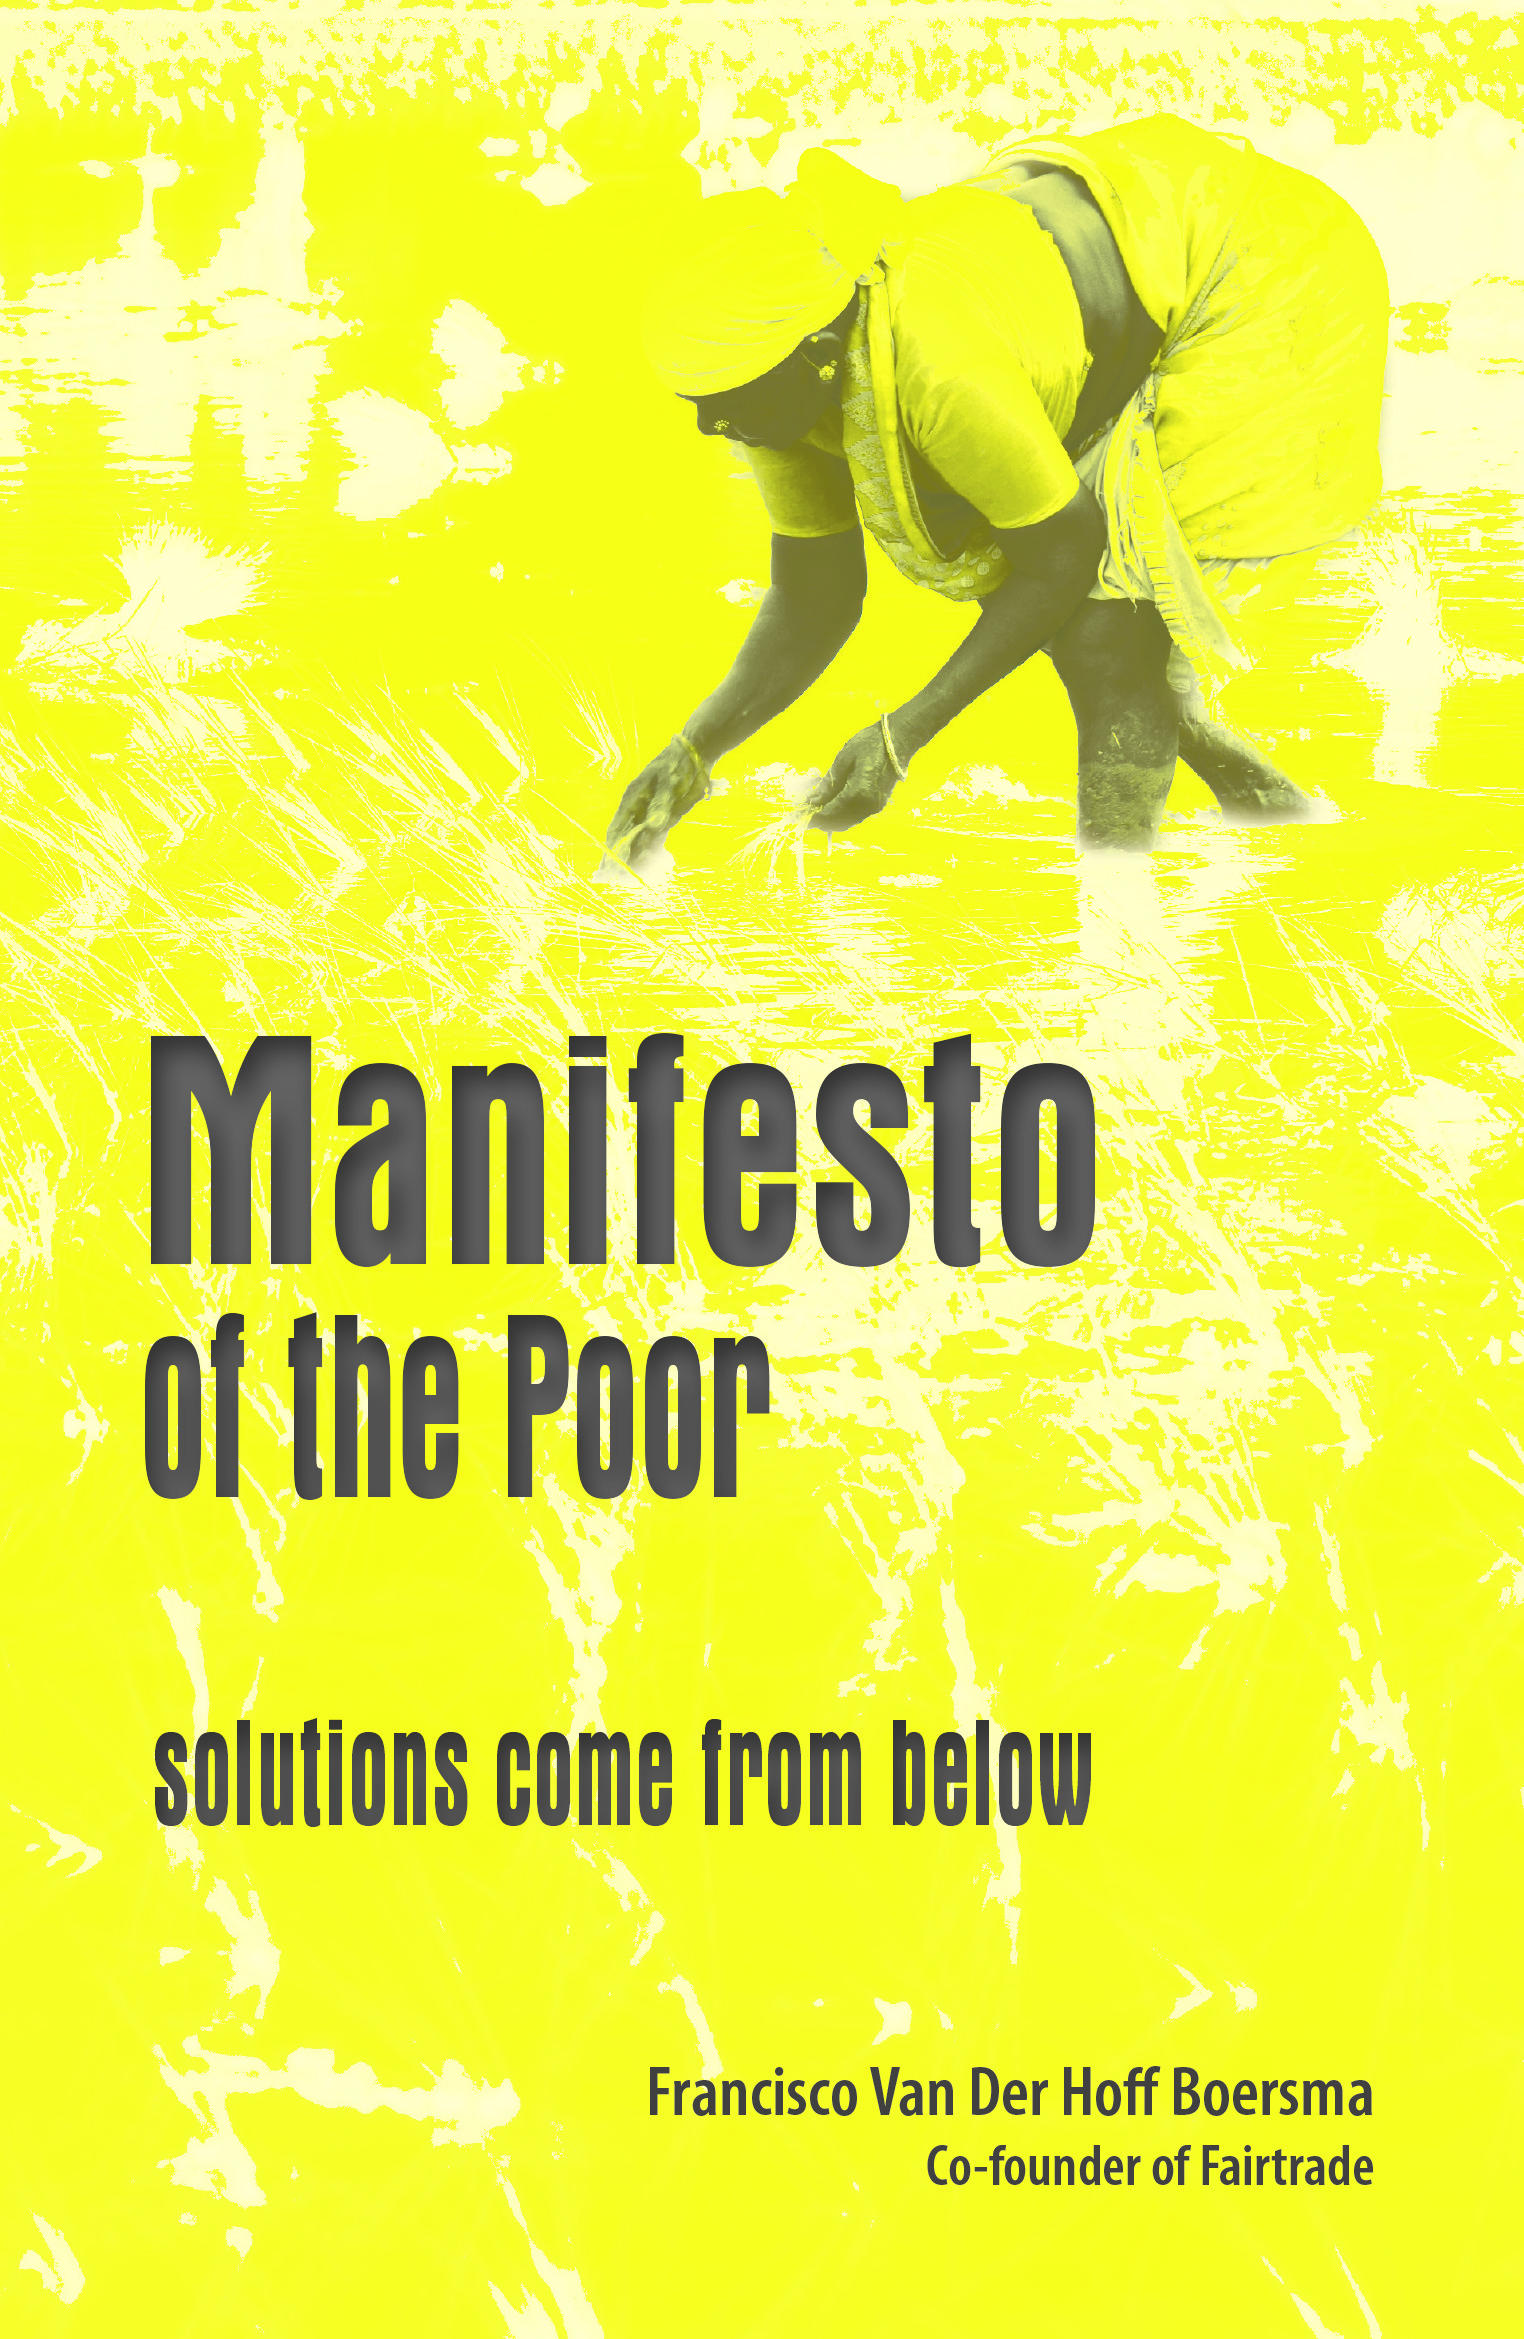 A Manifesto of the Poor: Solutions Come From Below by Francisco Van der Hoff Boersma